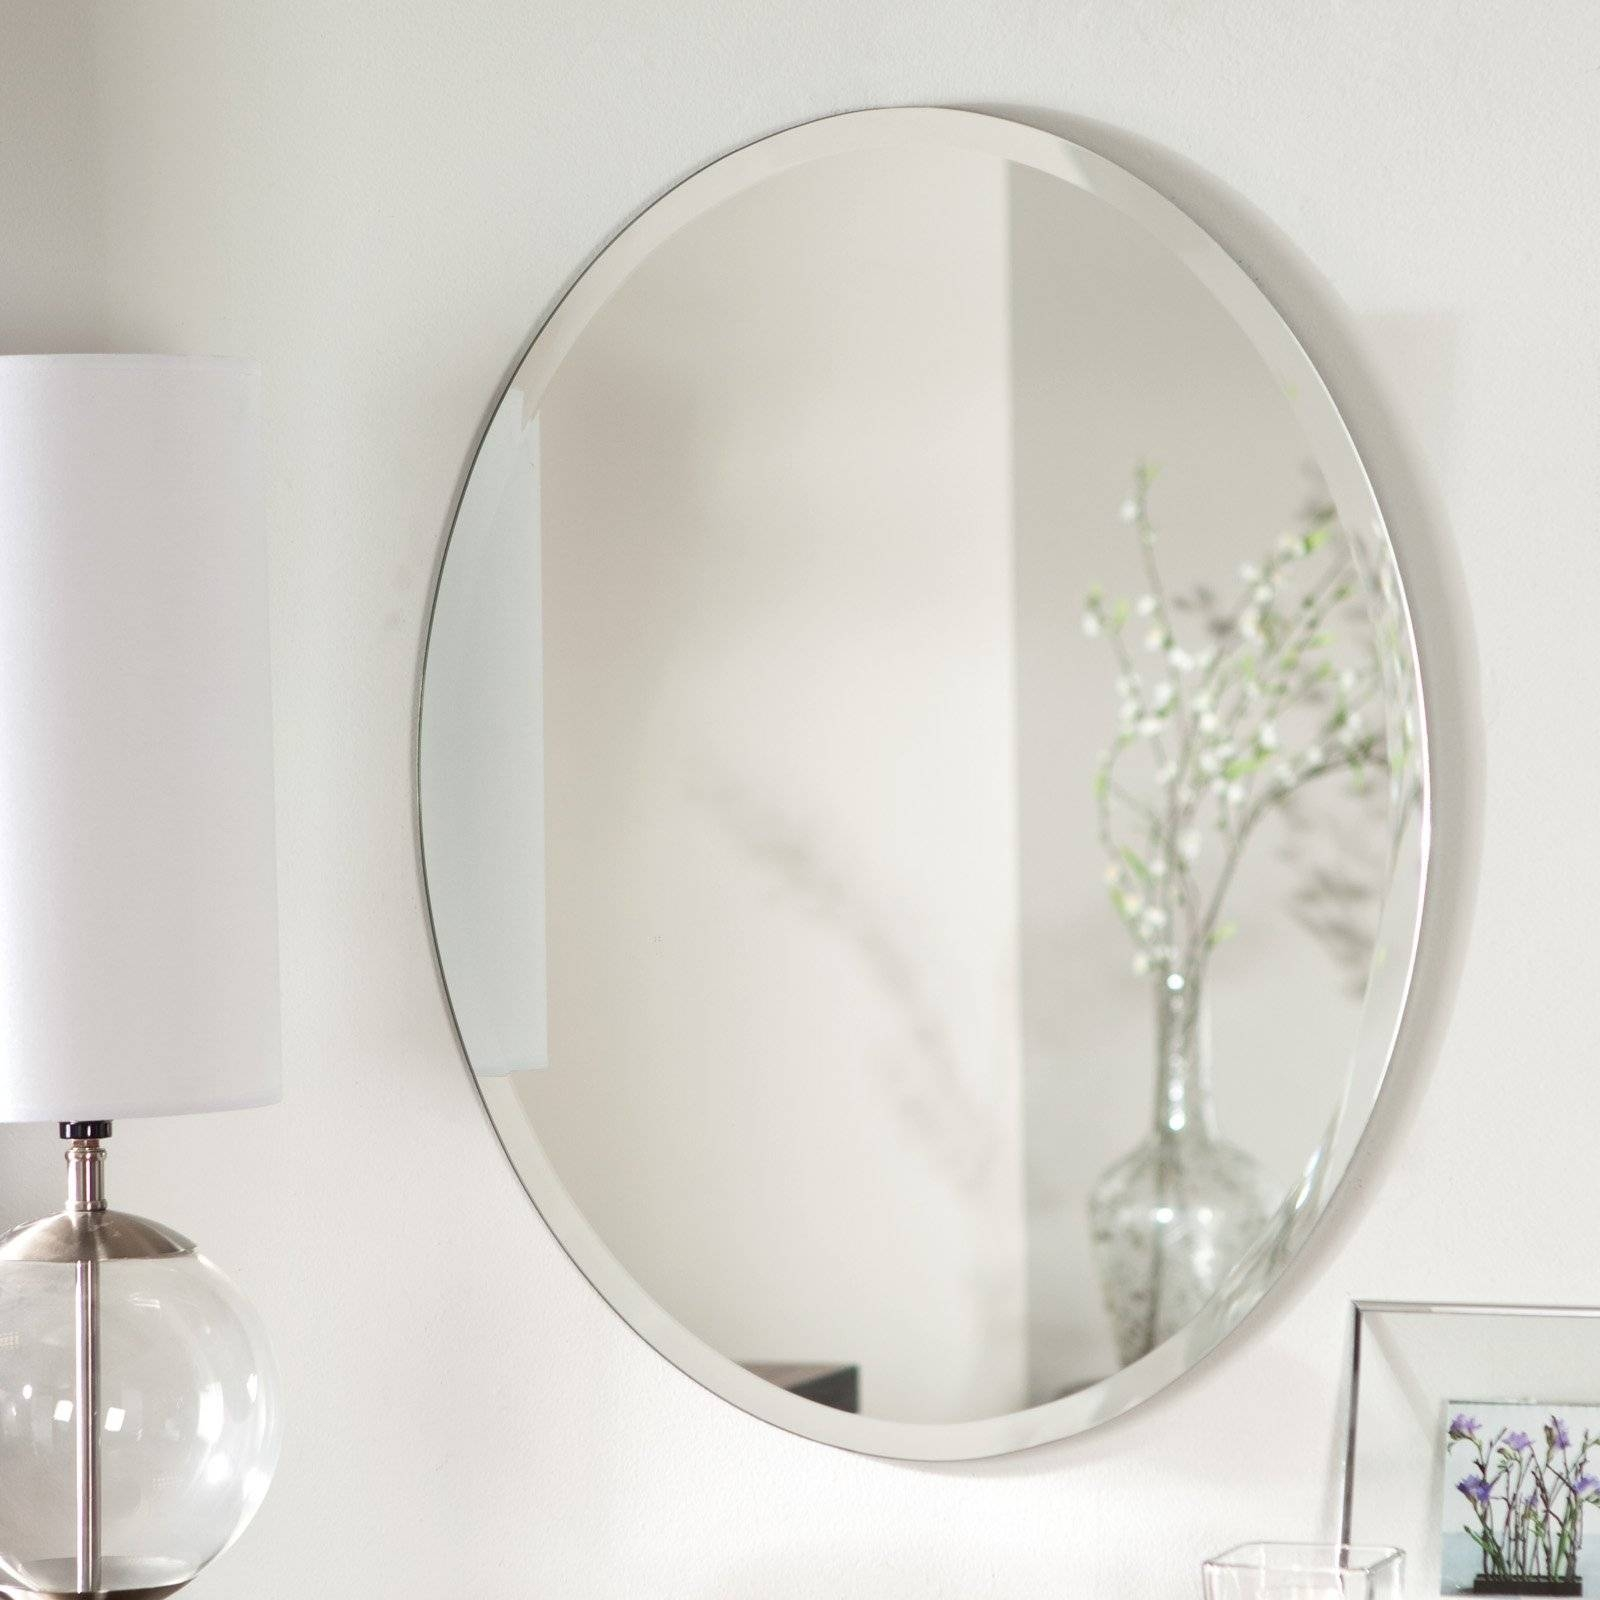 Décor Wonderland Odelia Oval Bevel Frameless Wall Mirror for Bevelled Oval Mirrors (Image 3 of 15)